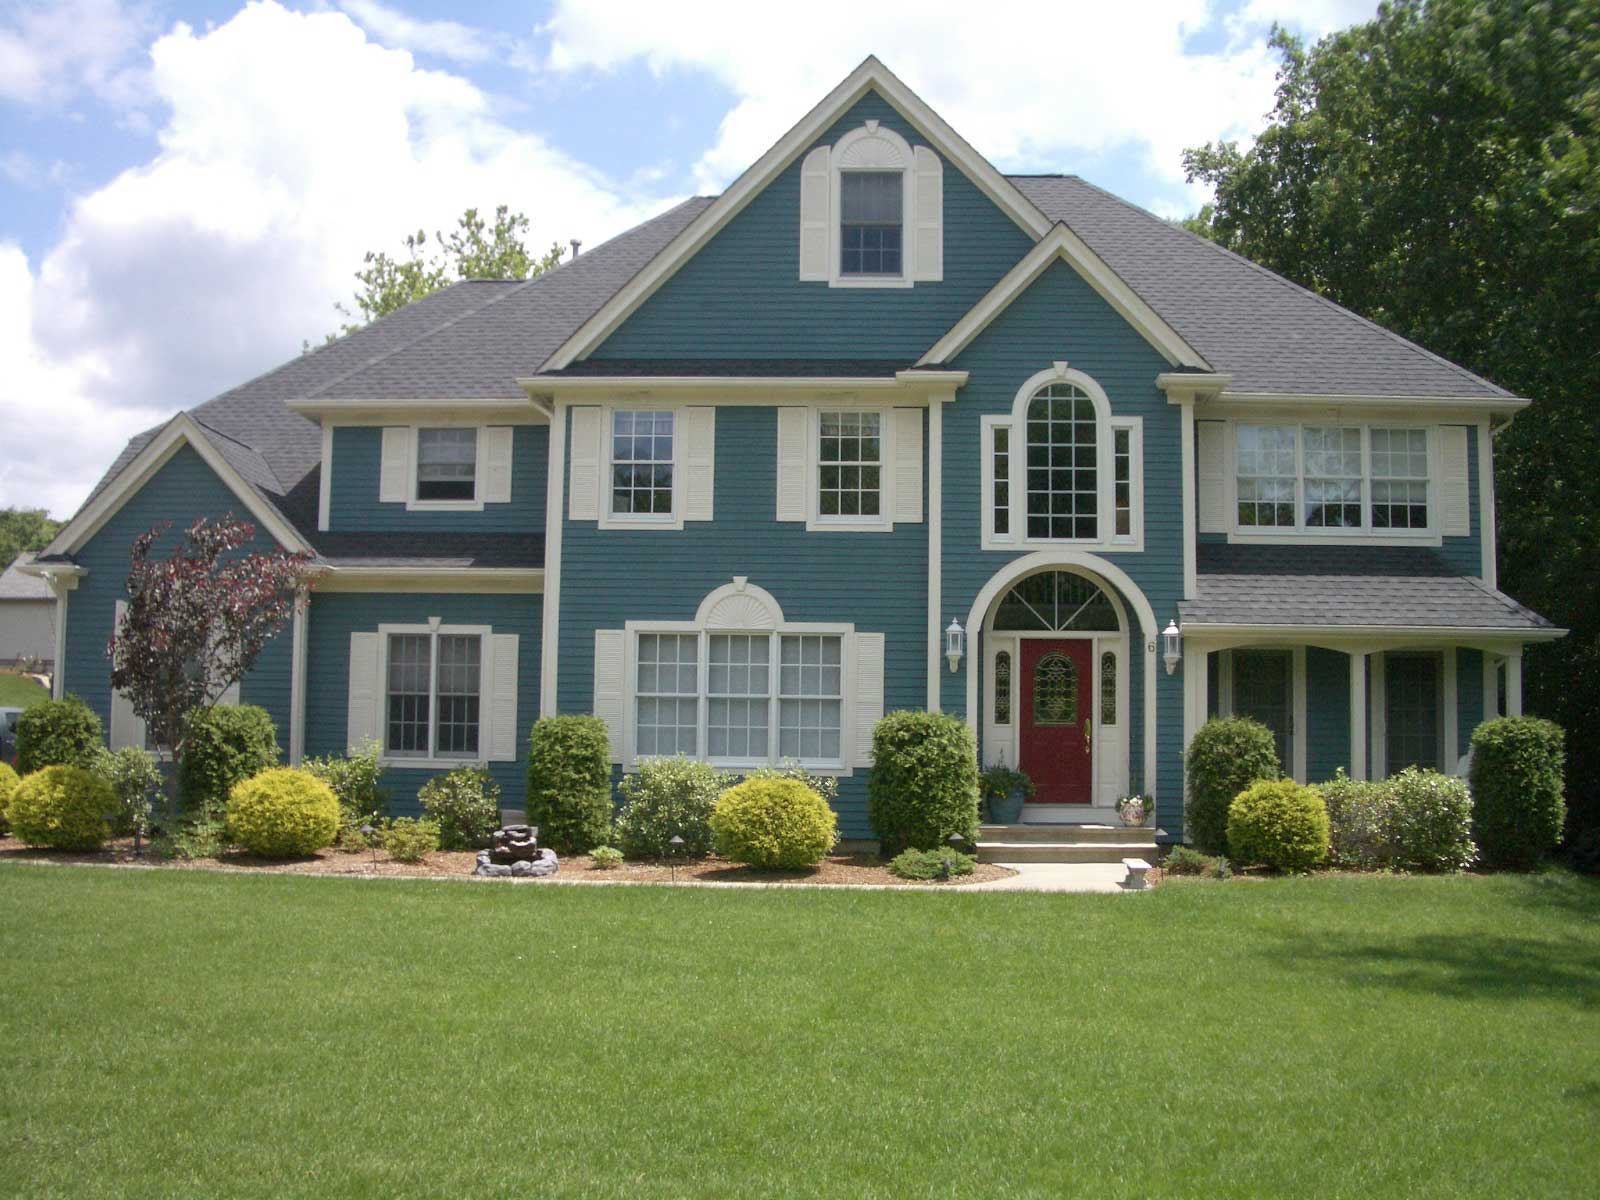 Most Popular Exterior House Colors - HomesFeed on Modern House Painting Ideas  id=59786